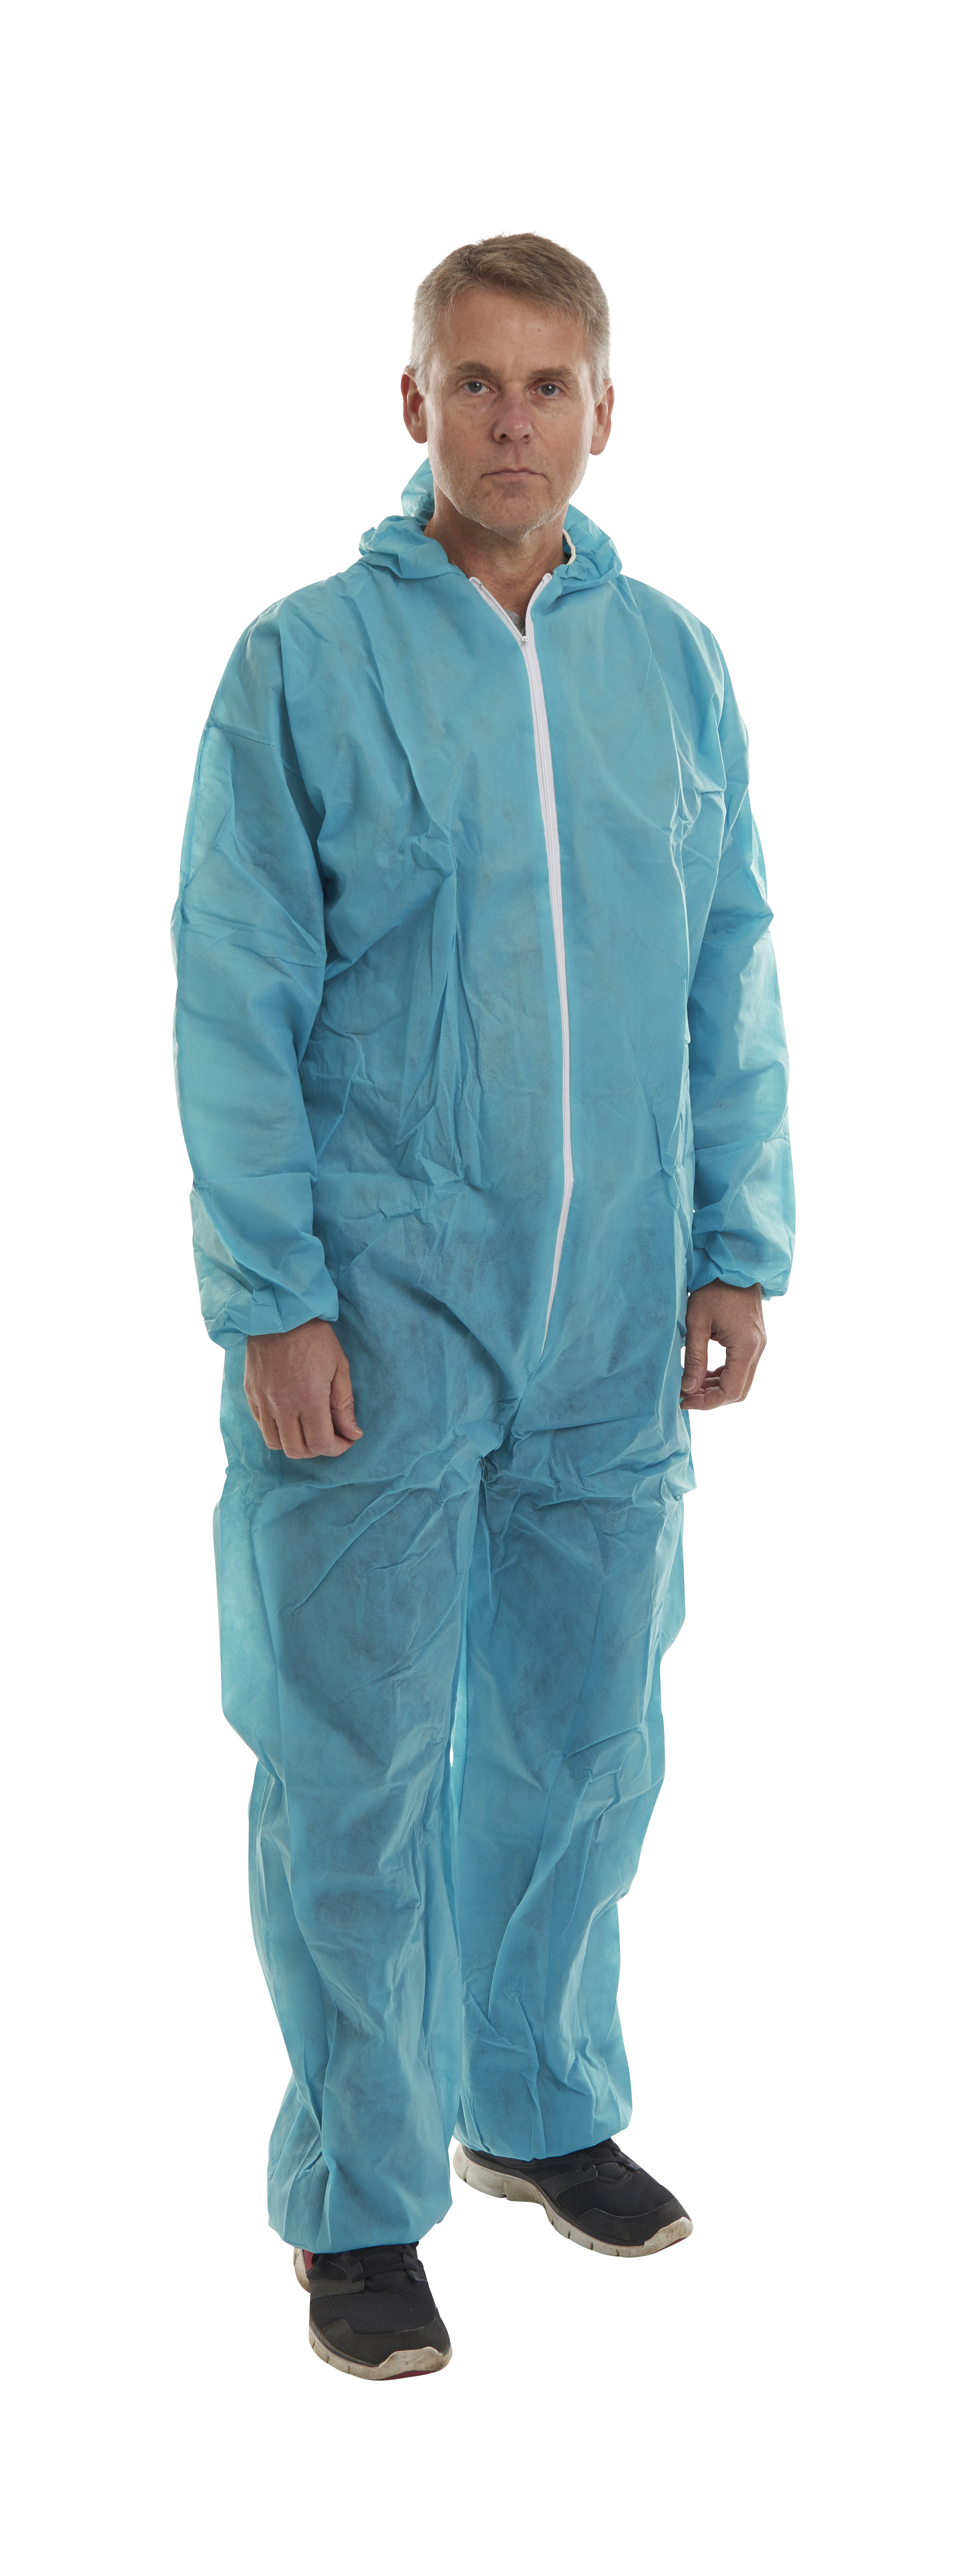 KRUTEX disposable suit, blue, S